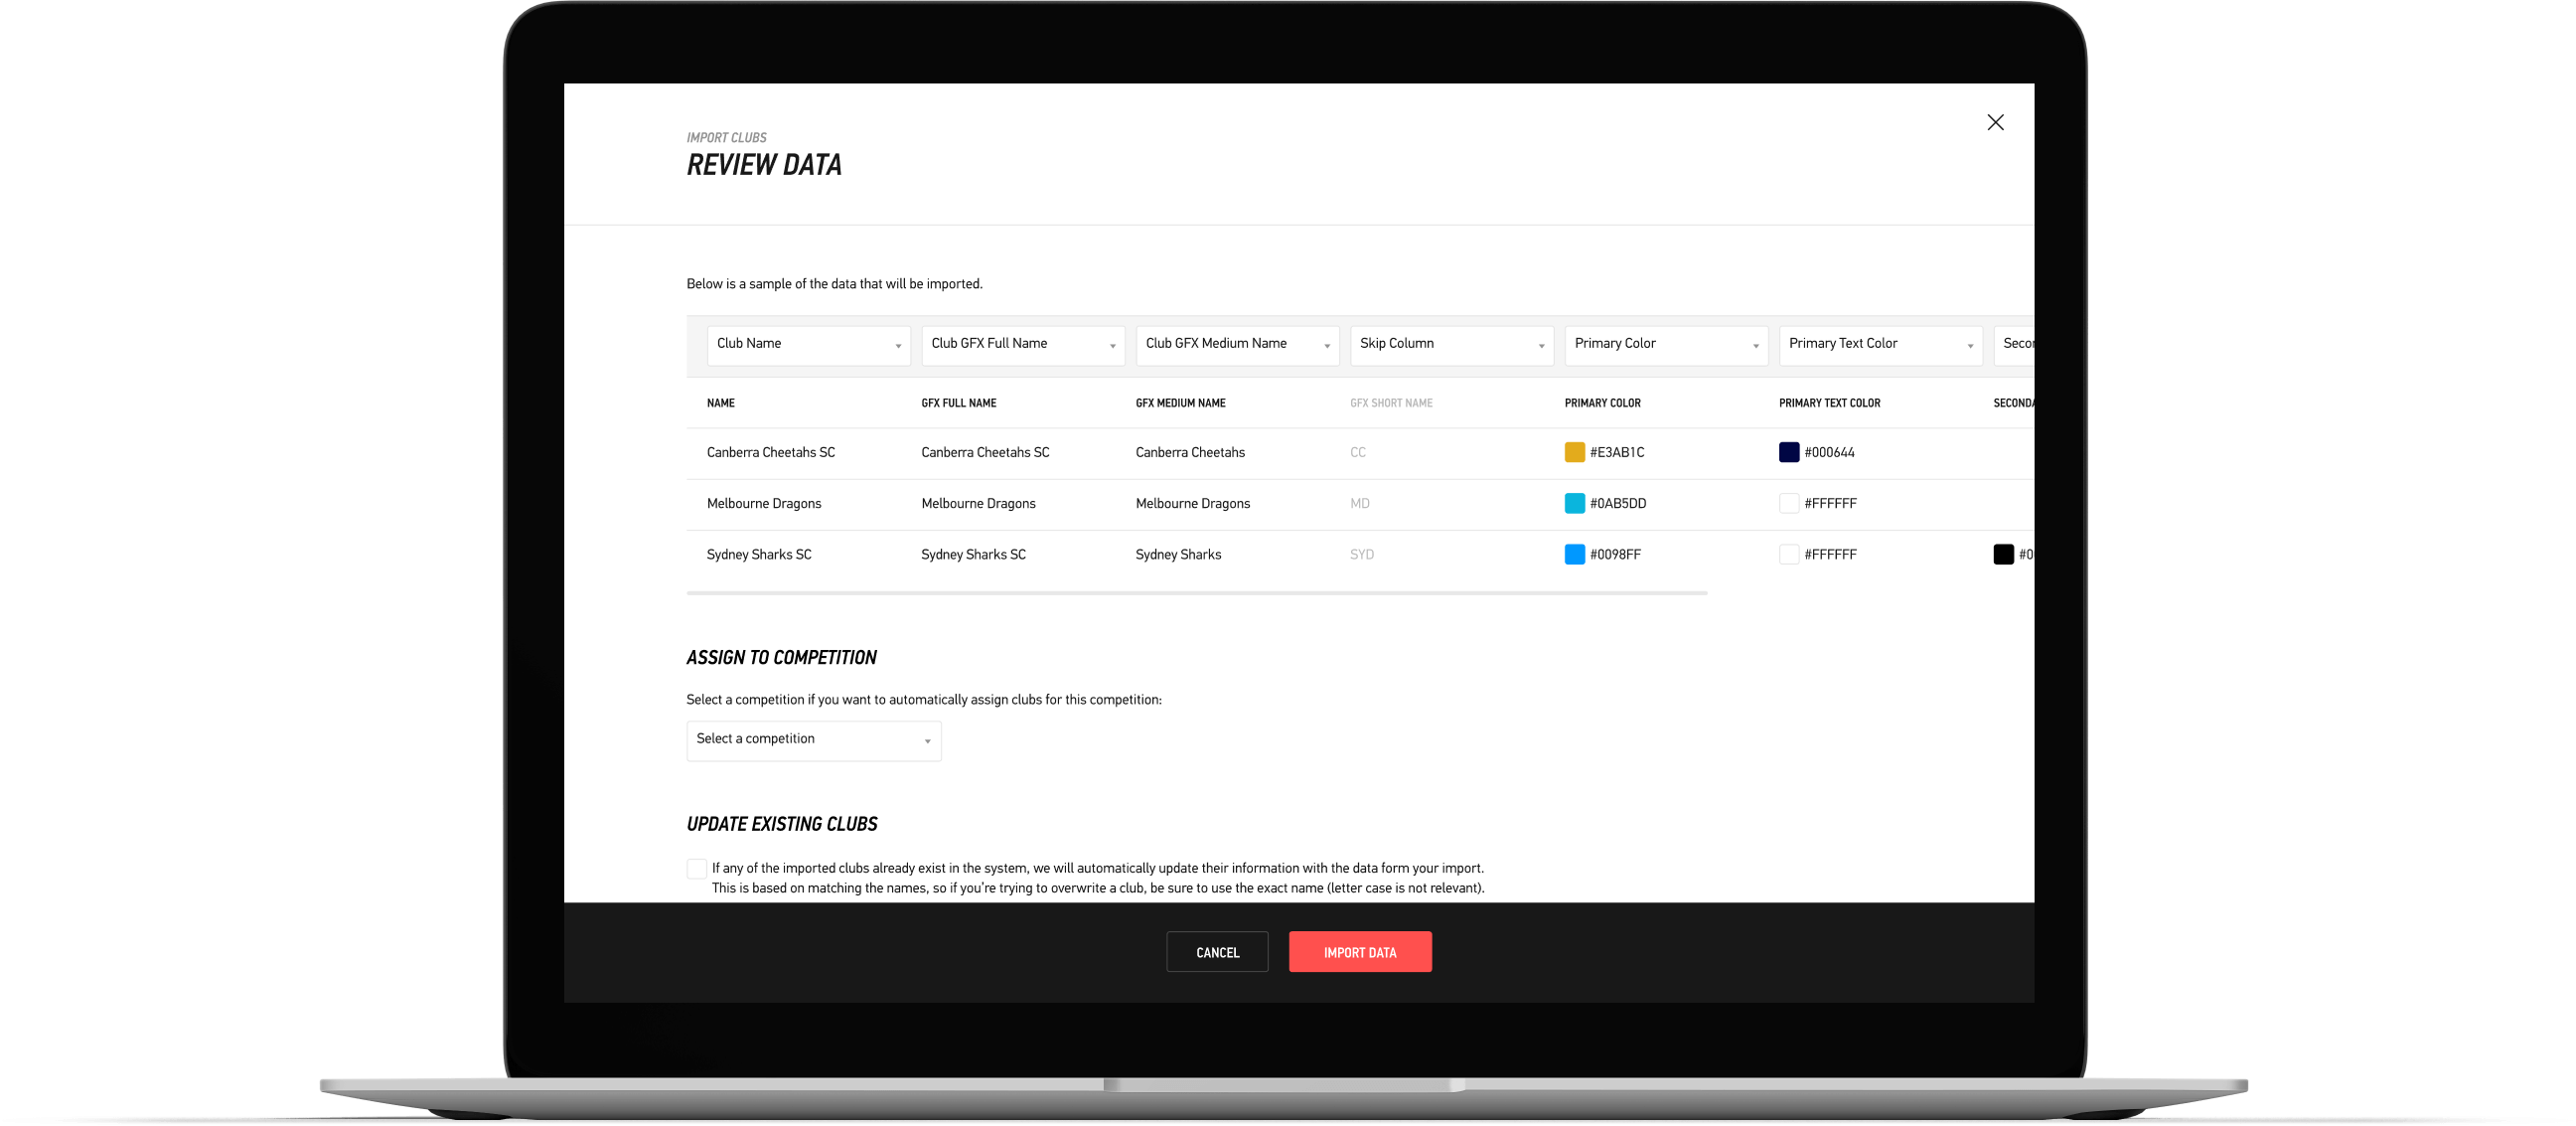 Import all your branding seamlessly and quickly using LIGR's bulk upload features.